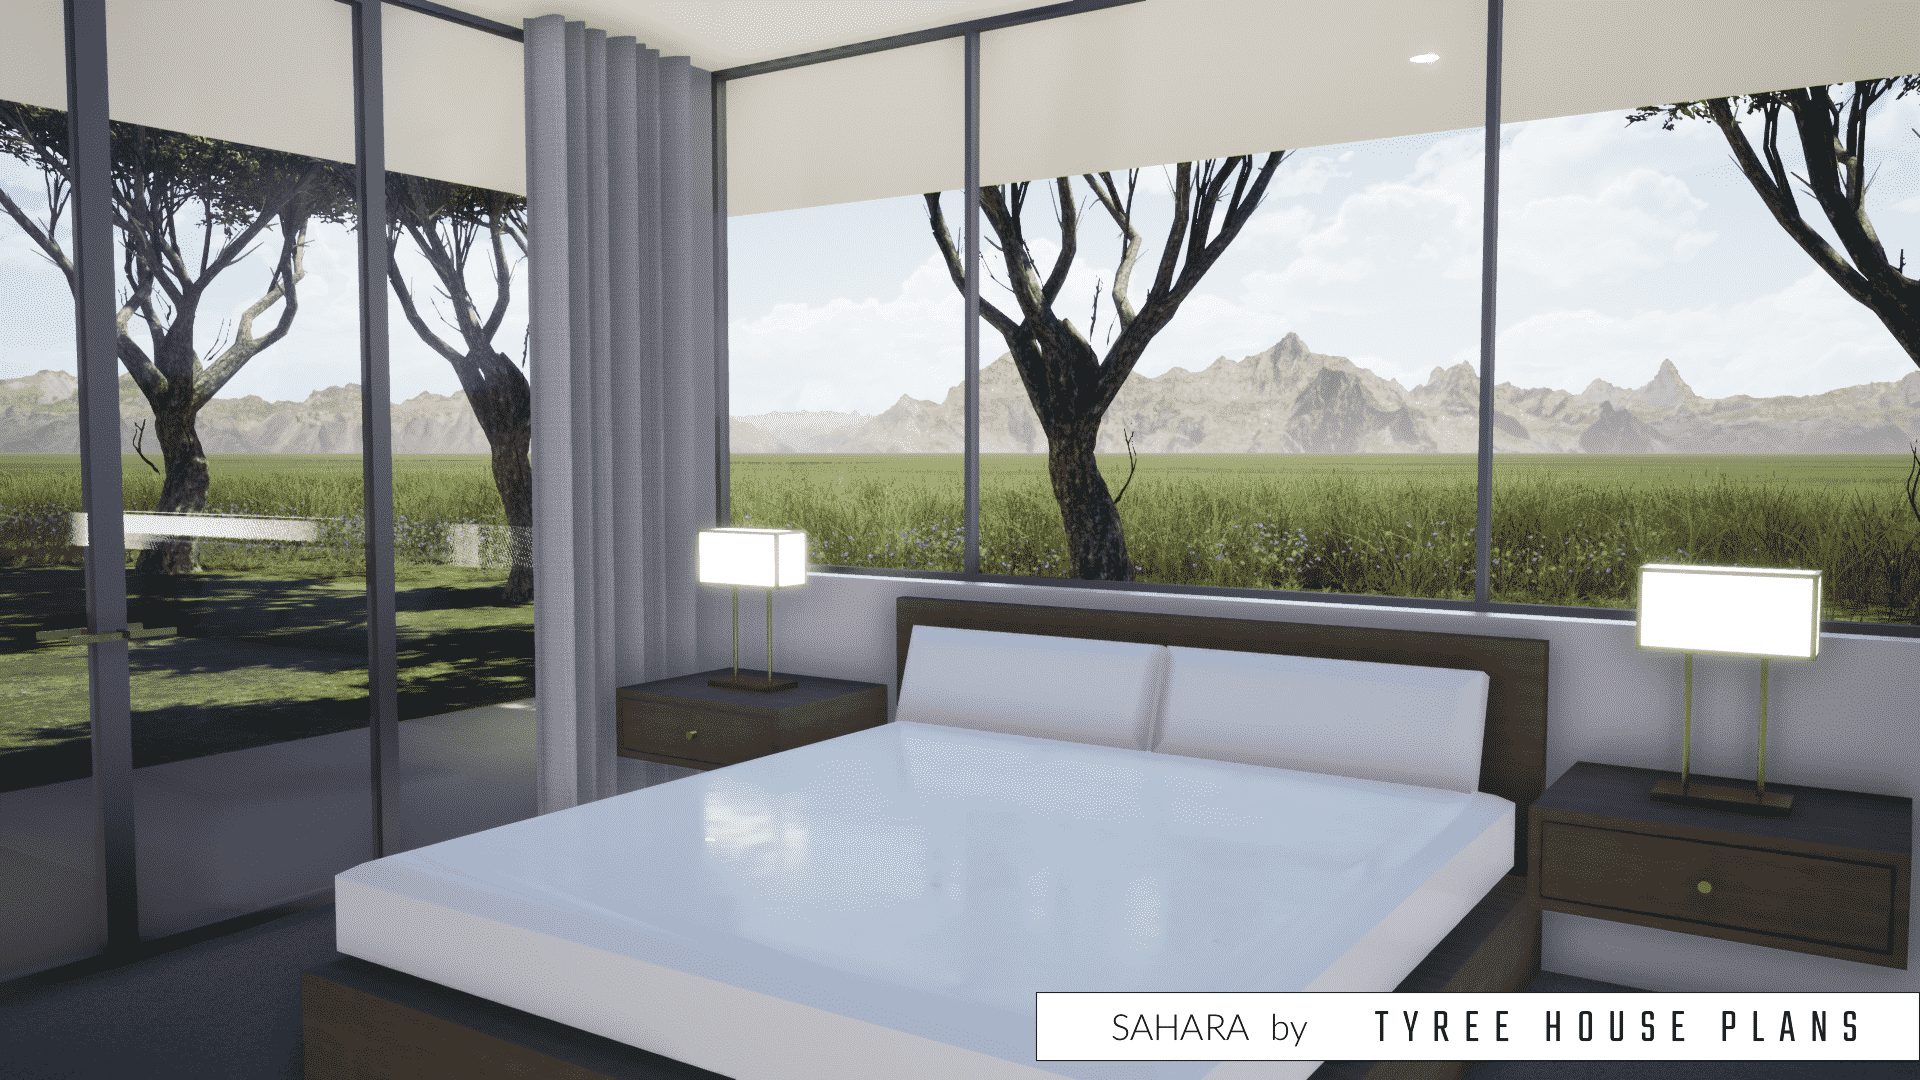 Sahara by Tyree House Plans